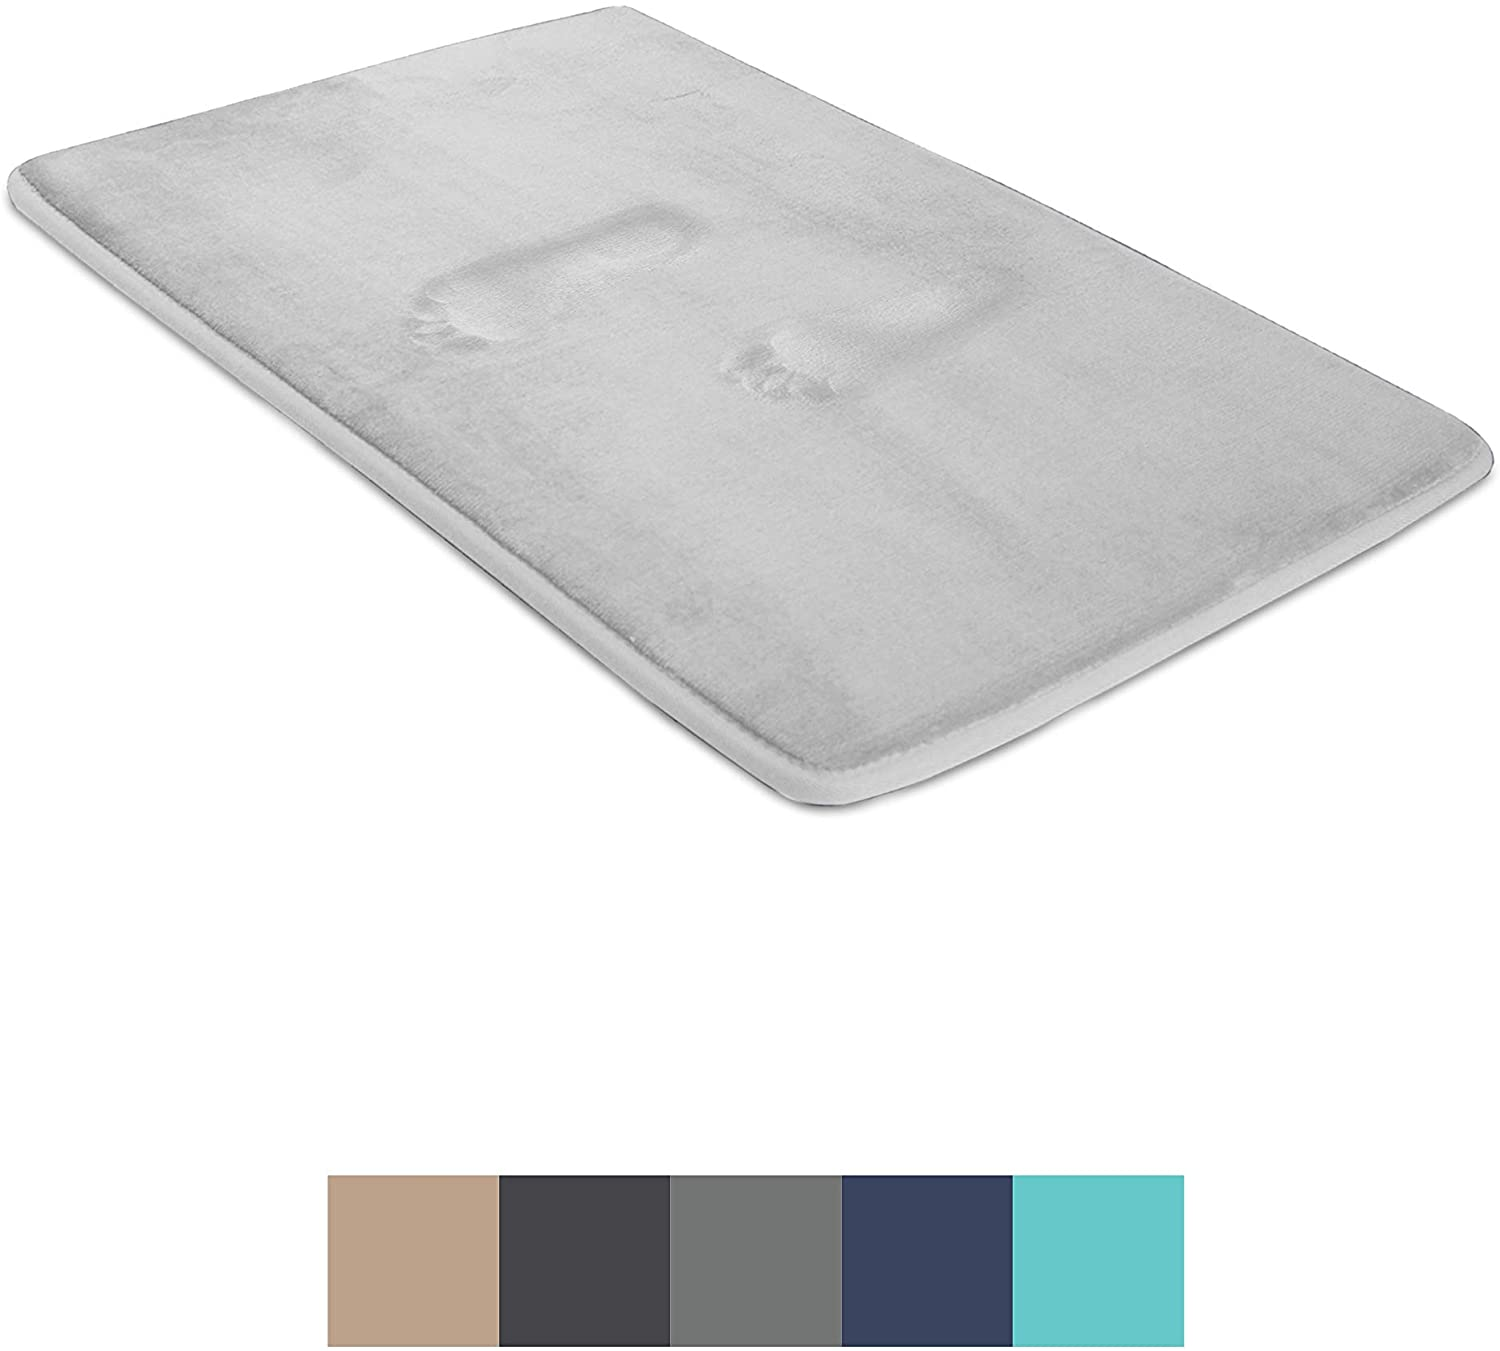 BIGFOOT Memory Foam Bath Mat 30 x 20 for Tub and Shower, Water Absorbent Non-Slip Bathroom Rug with Soft Velvet Top Layer, Thick Cushioning Foam with PVC Dot Bottom Layer Keeps Floors Dry, Gray